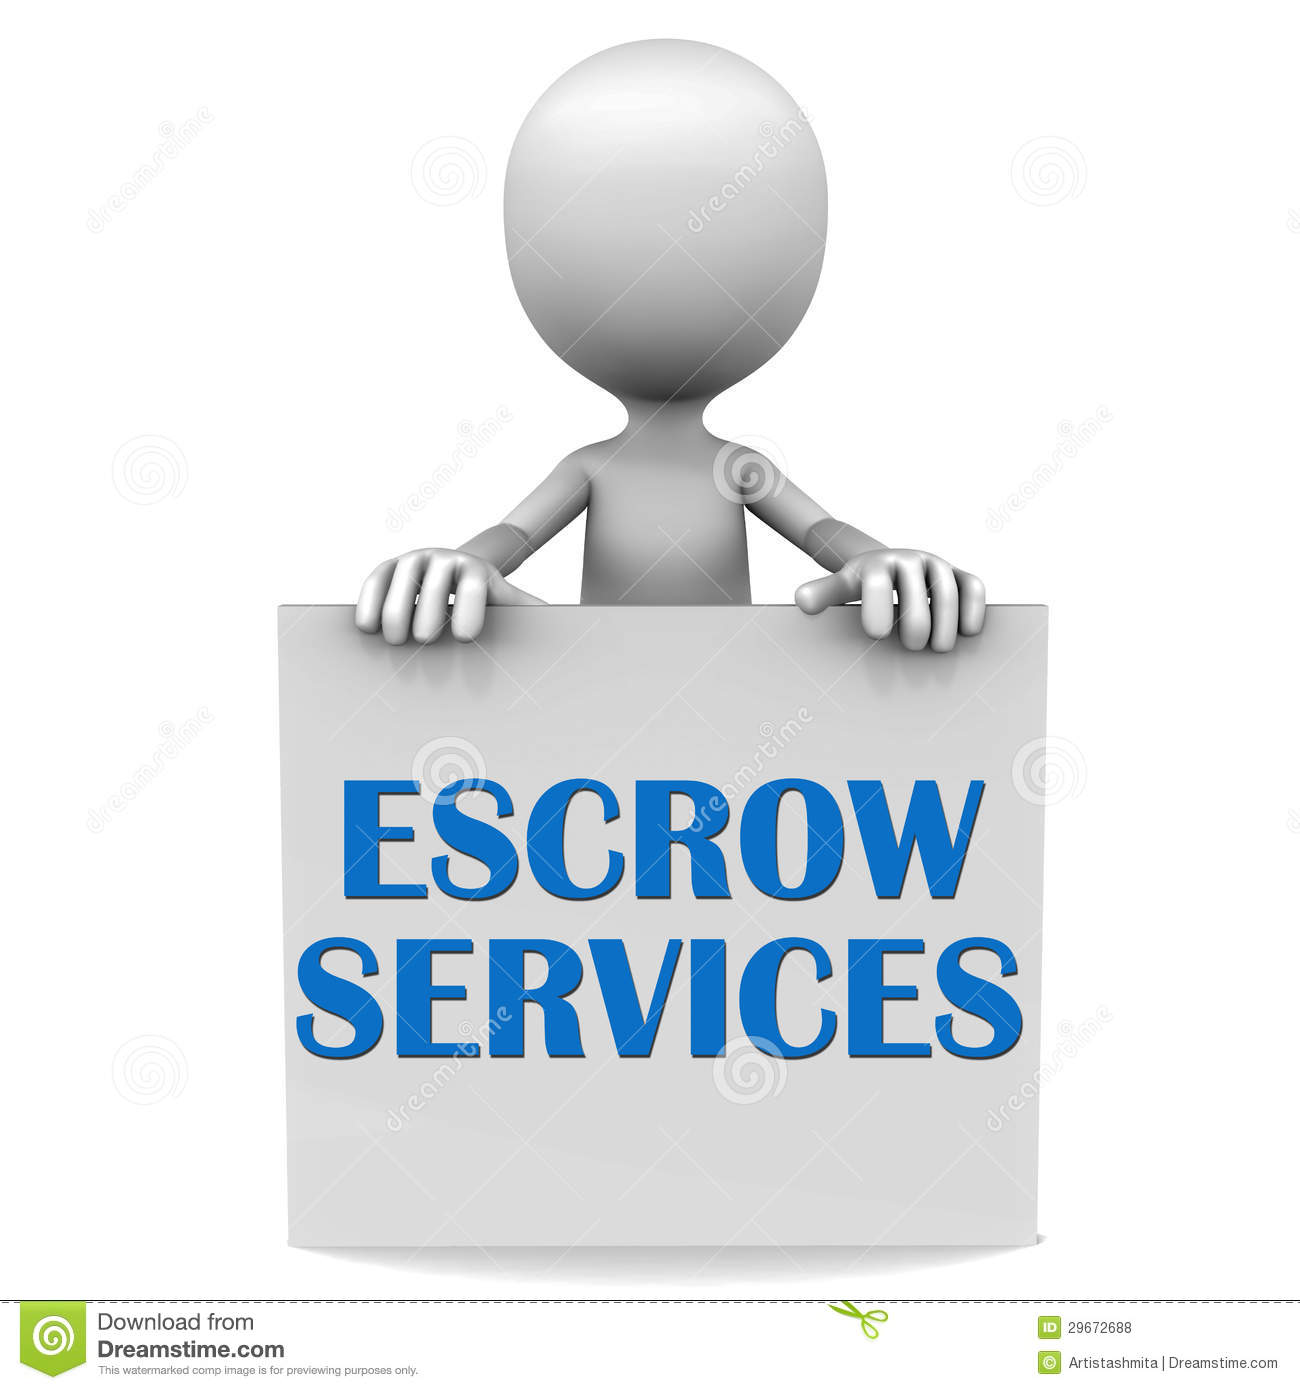 """The escrow shares were placed in escrow because of the tax implications of the project that implied the possibility of a tax liability existing."